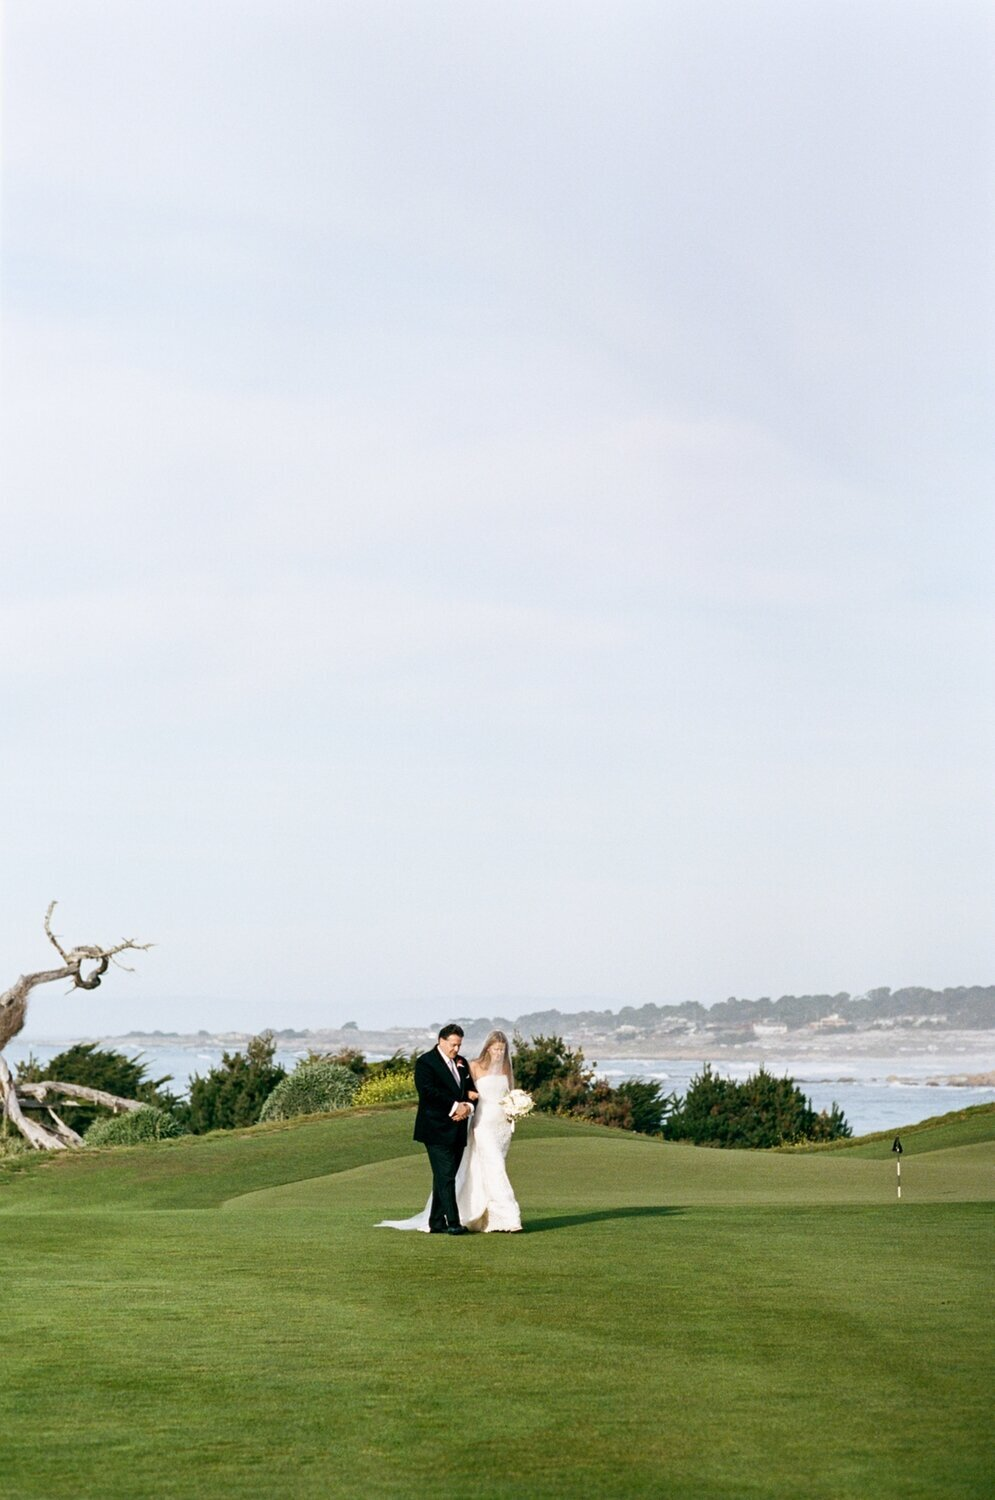 Monterey_Peninsula_Country_Club_autumn_red_white_floral_classic_golf_wedding_inspiration028